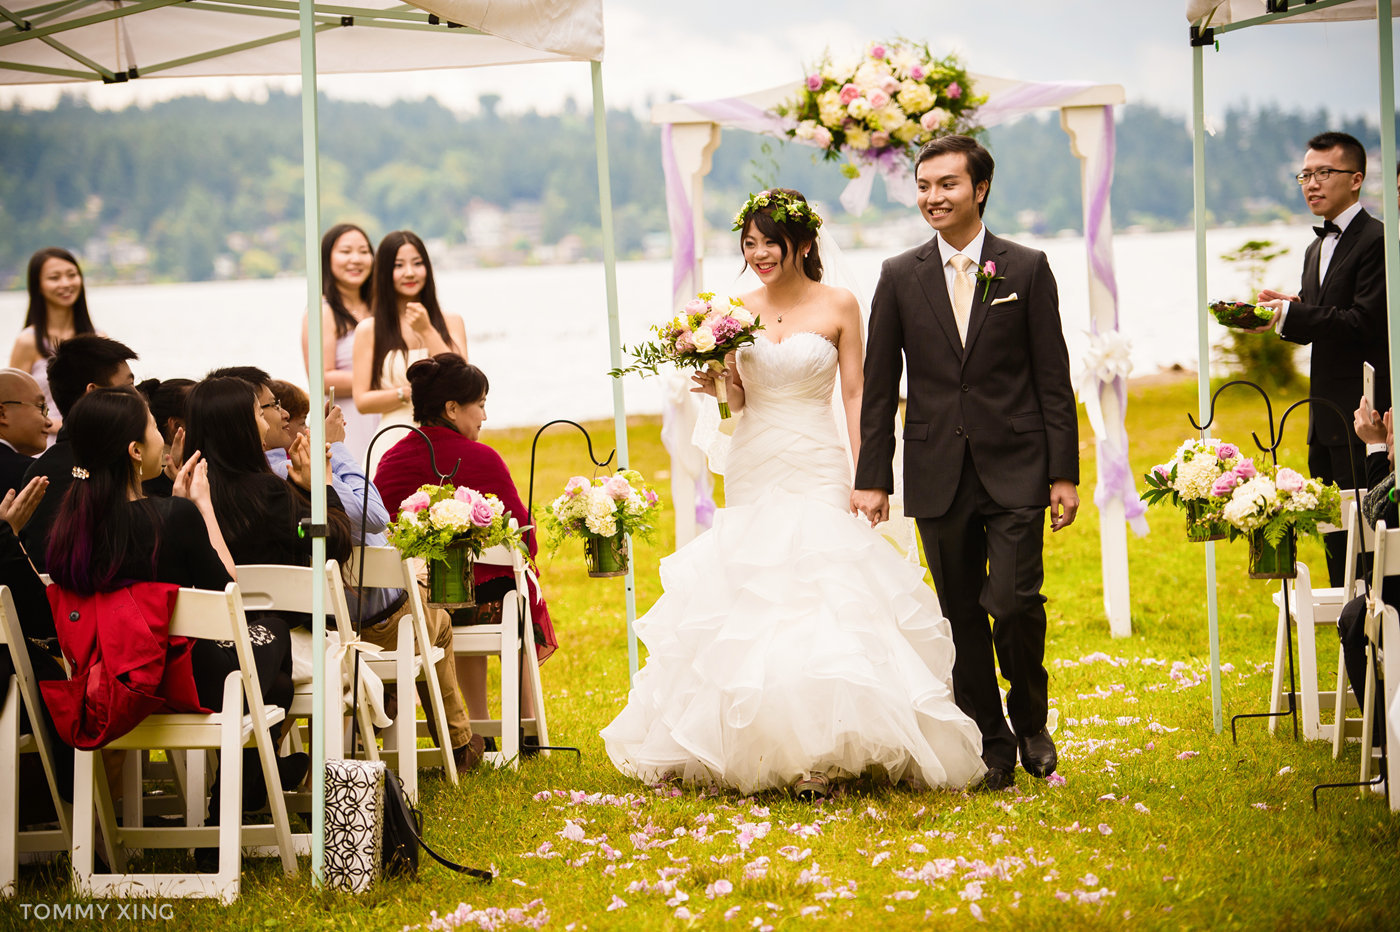 Seattle Wedding and pre wedding Los Angeles Tommy Xing Photography 西雅图洛杉矶旧金山婚礼婚纱照摄影师 102.jpg